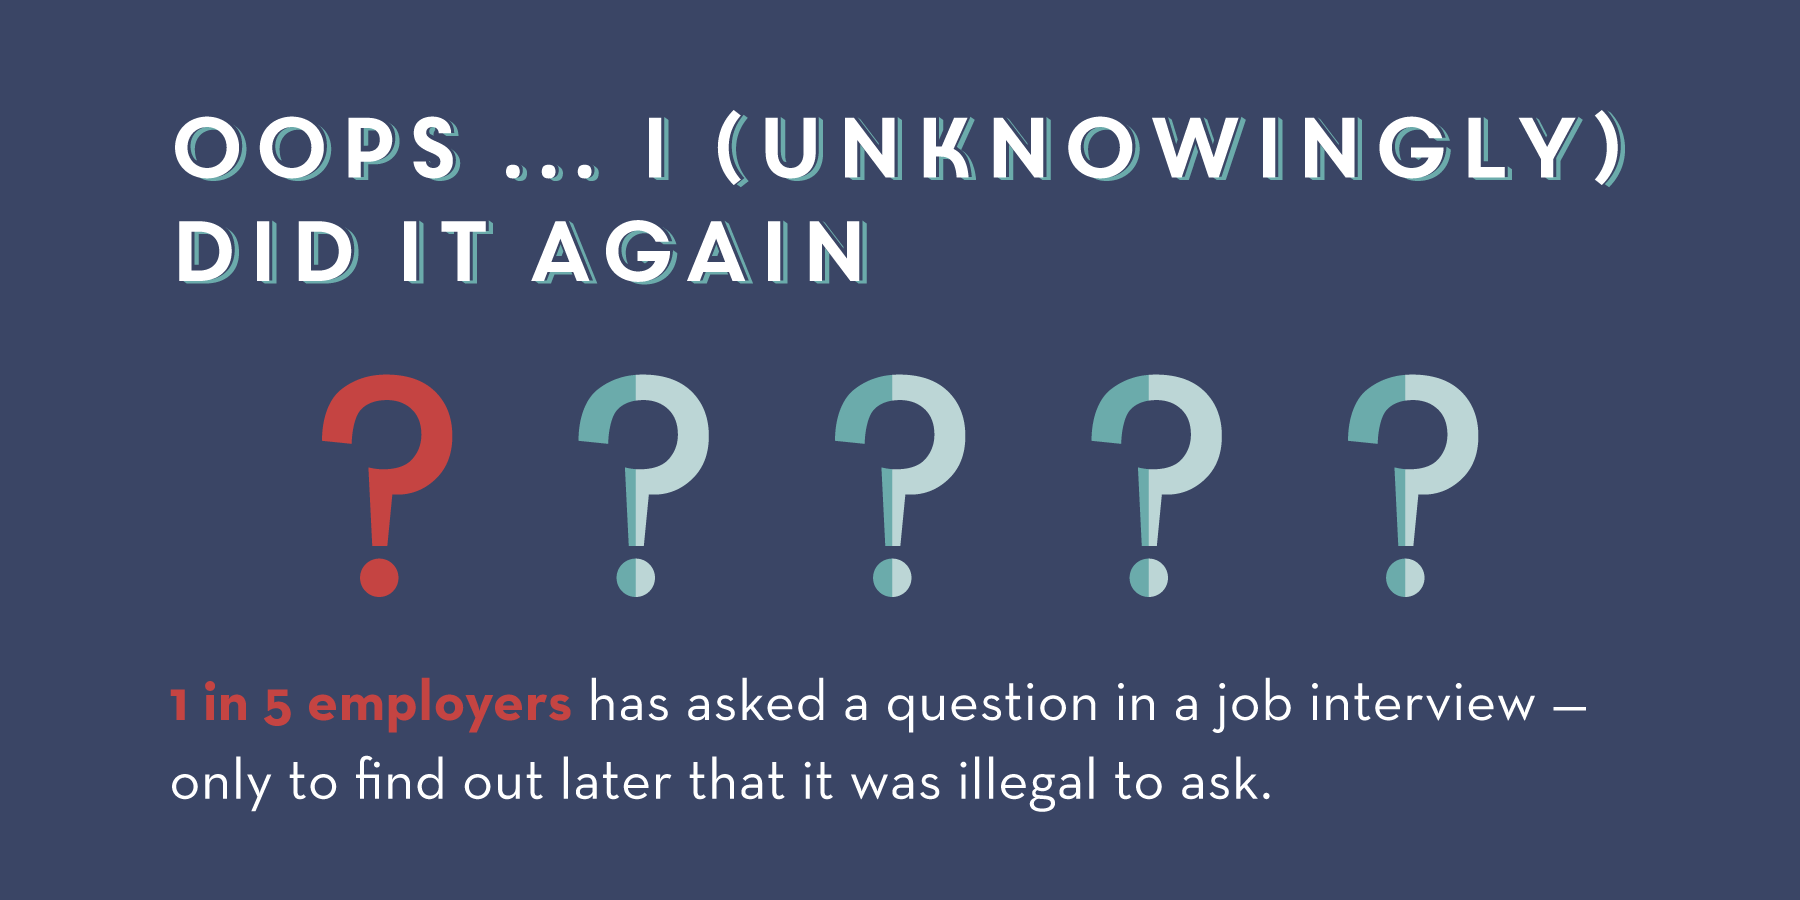 illegal interview questions employers not know they re asking across the u s shows that the boundaries aren t clear when it comes to what s ok to ask versus questions that are off limits from a legal perspective